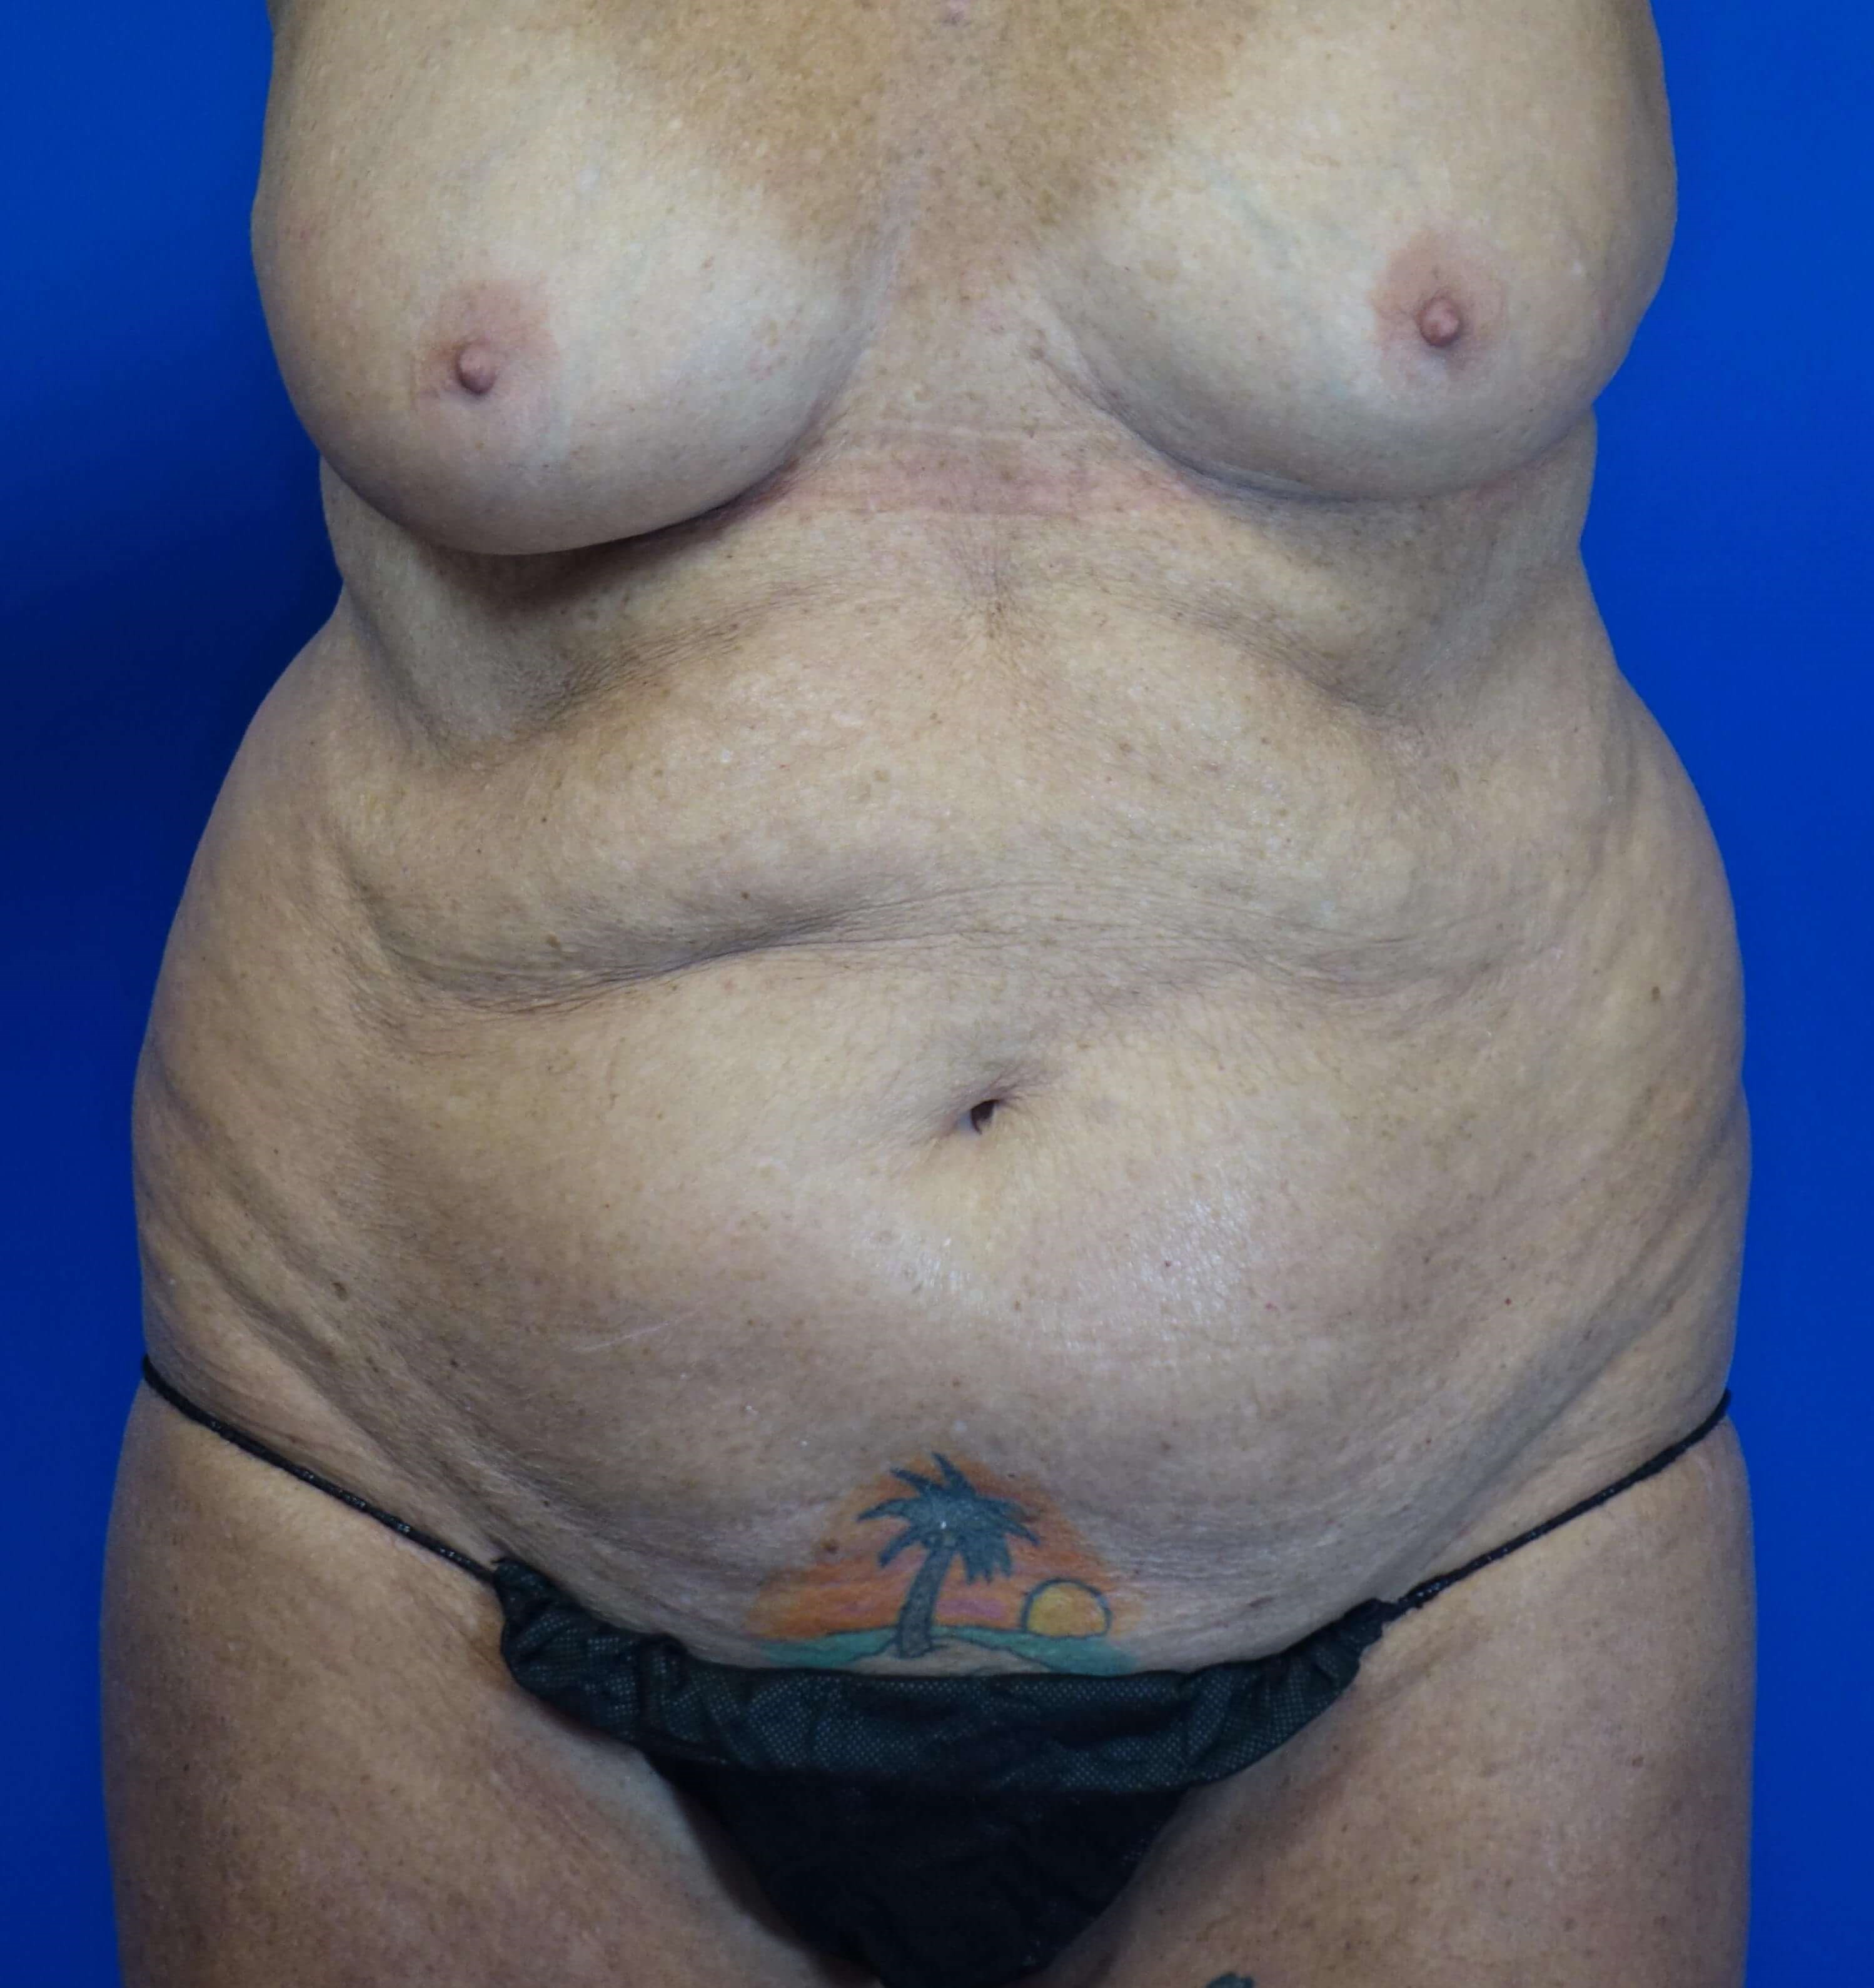 Tummy Tuck in 64 year-old Before